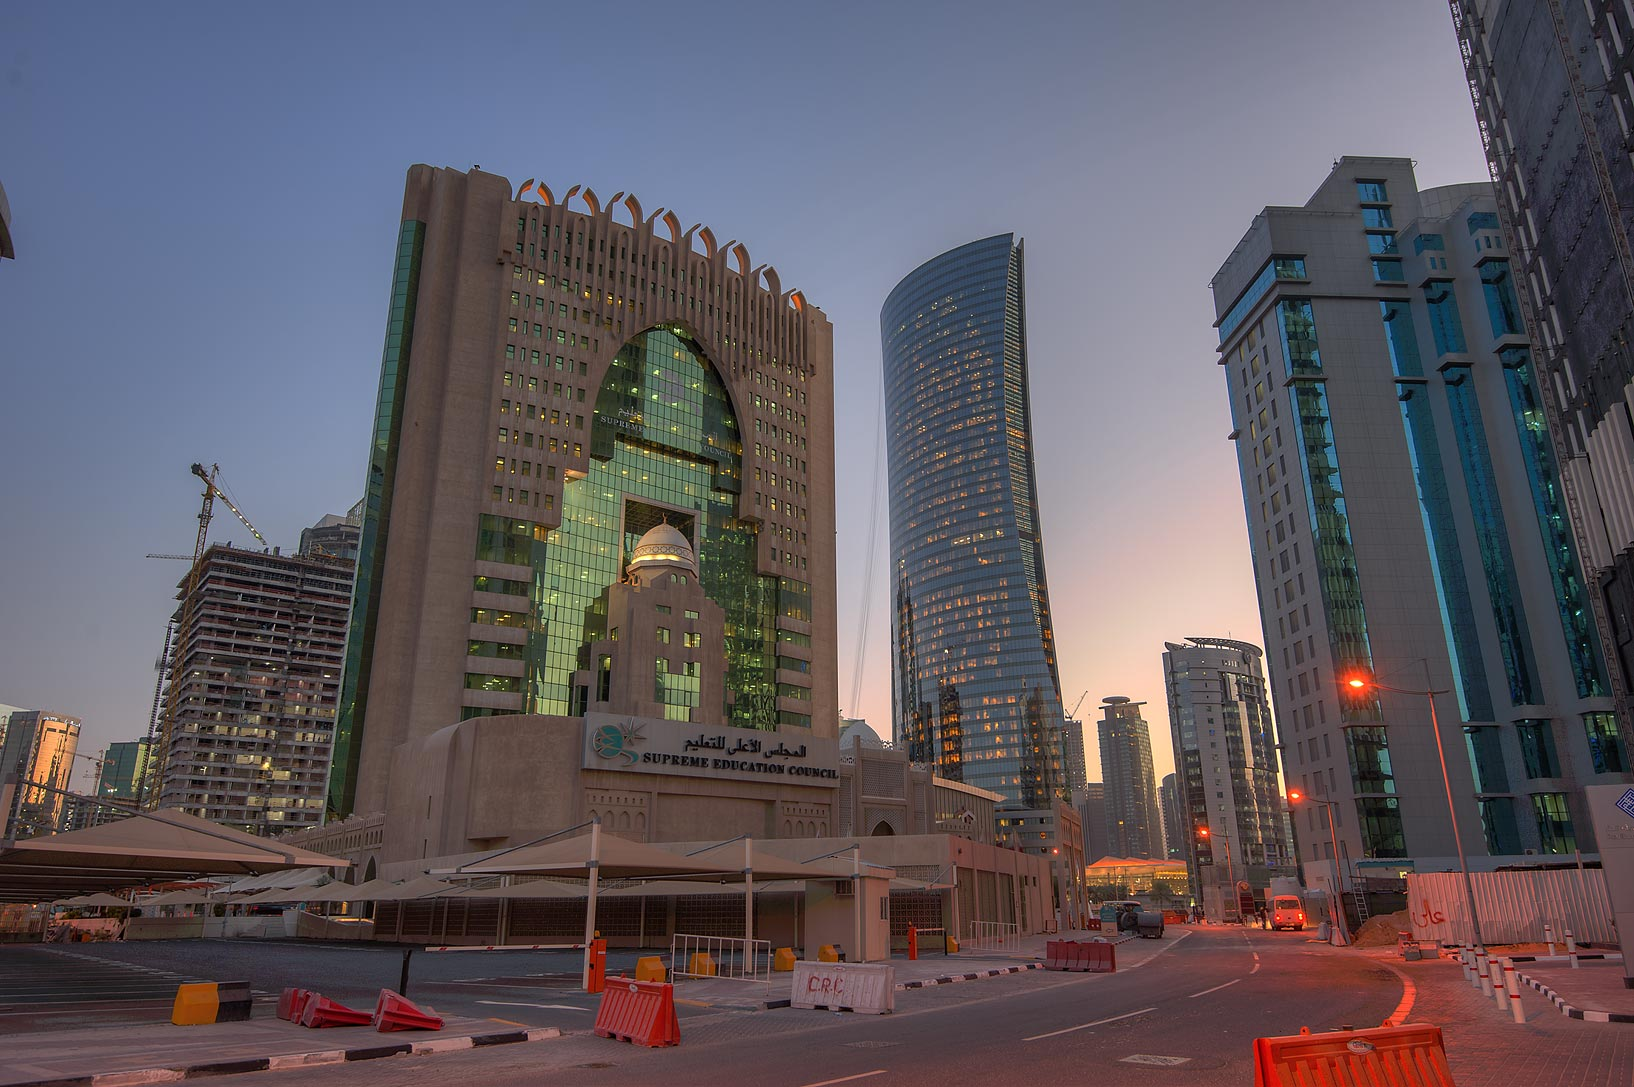 Ministry of Education in West Bay. Doha, Qatar